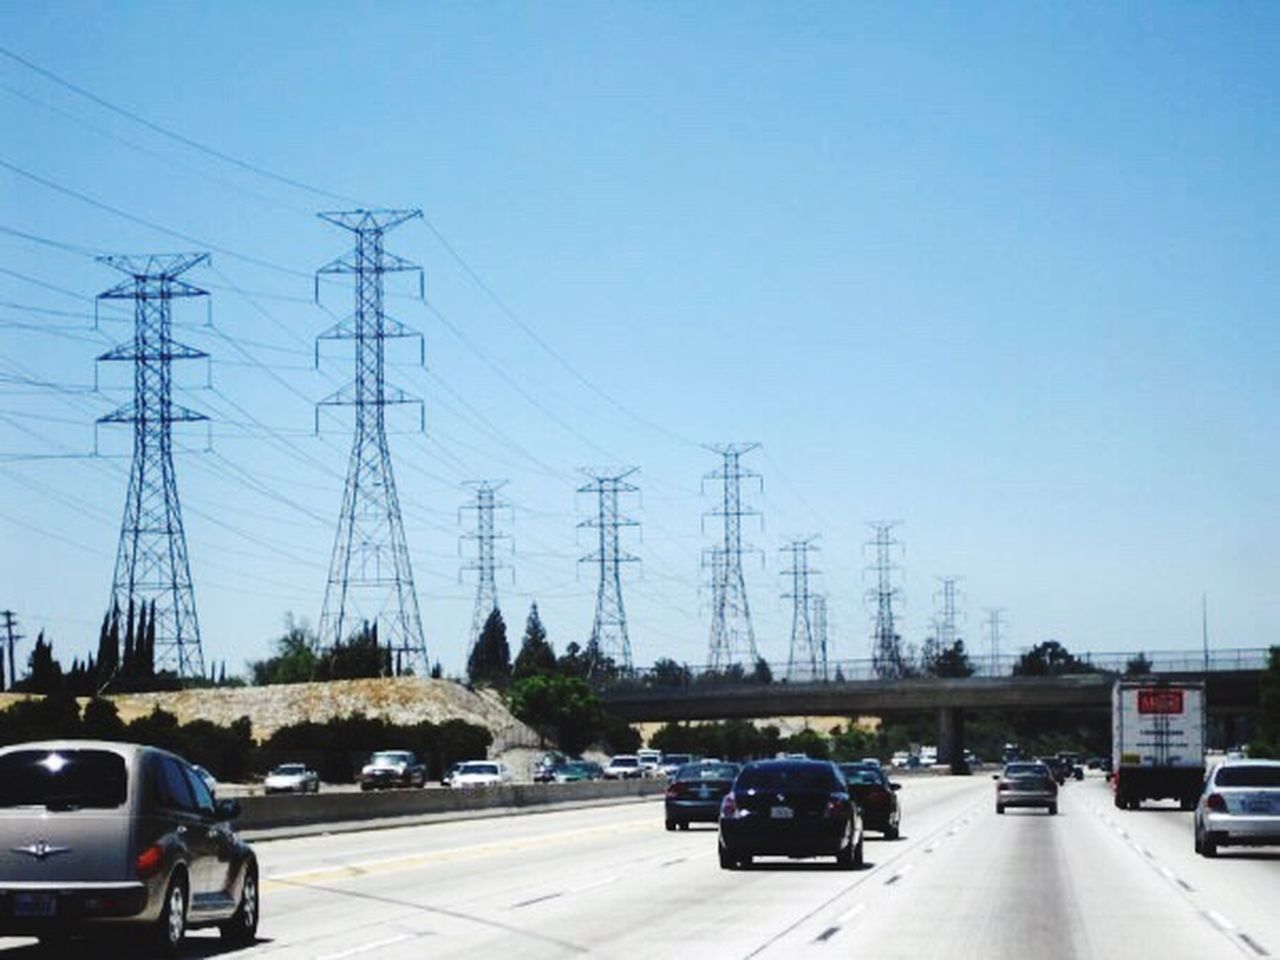 Freeways La Losangeles Lalaland Cars Electricity